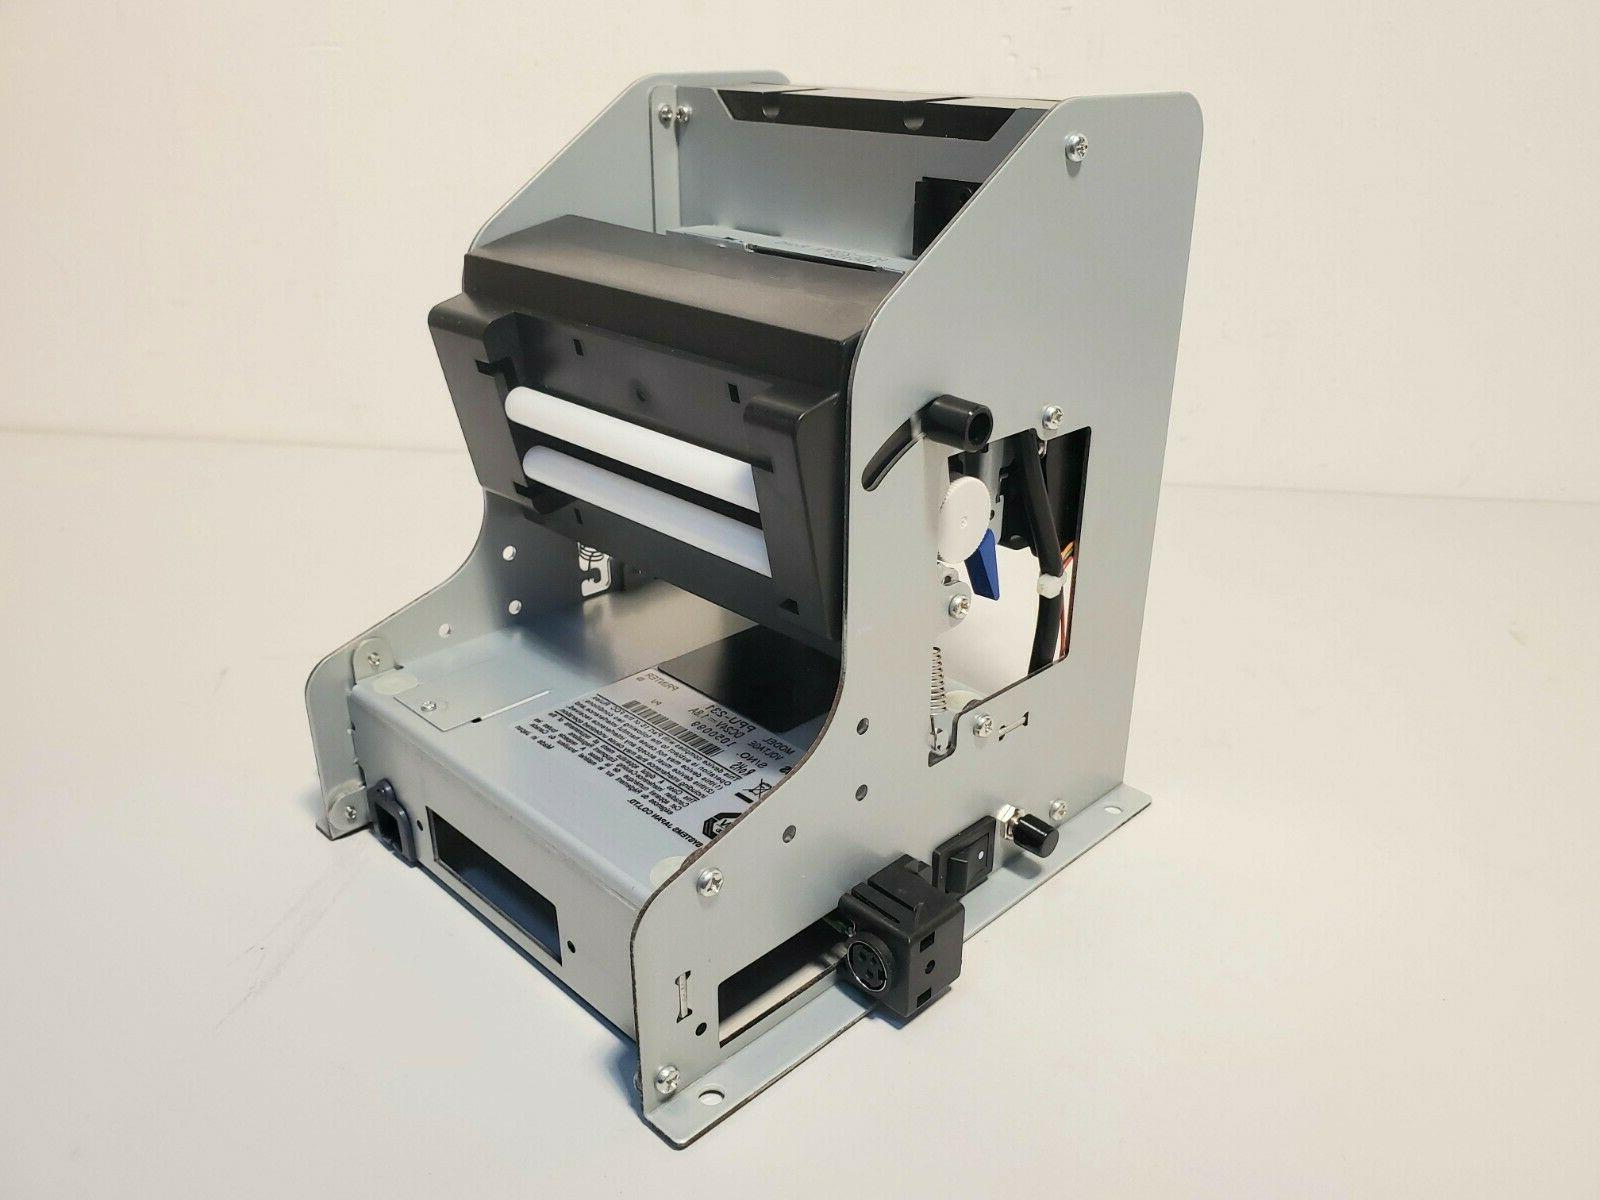 Citizen Printer Printers Product, only